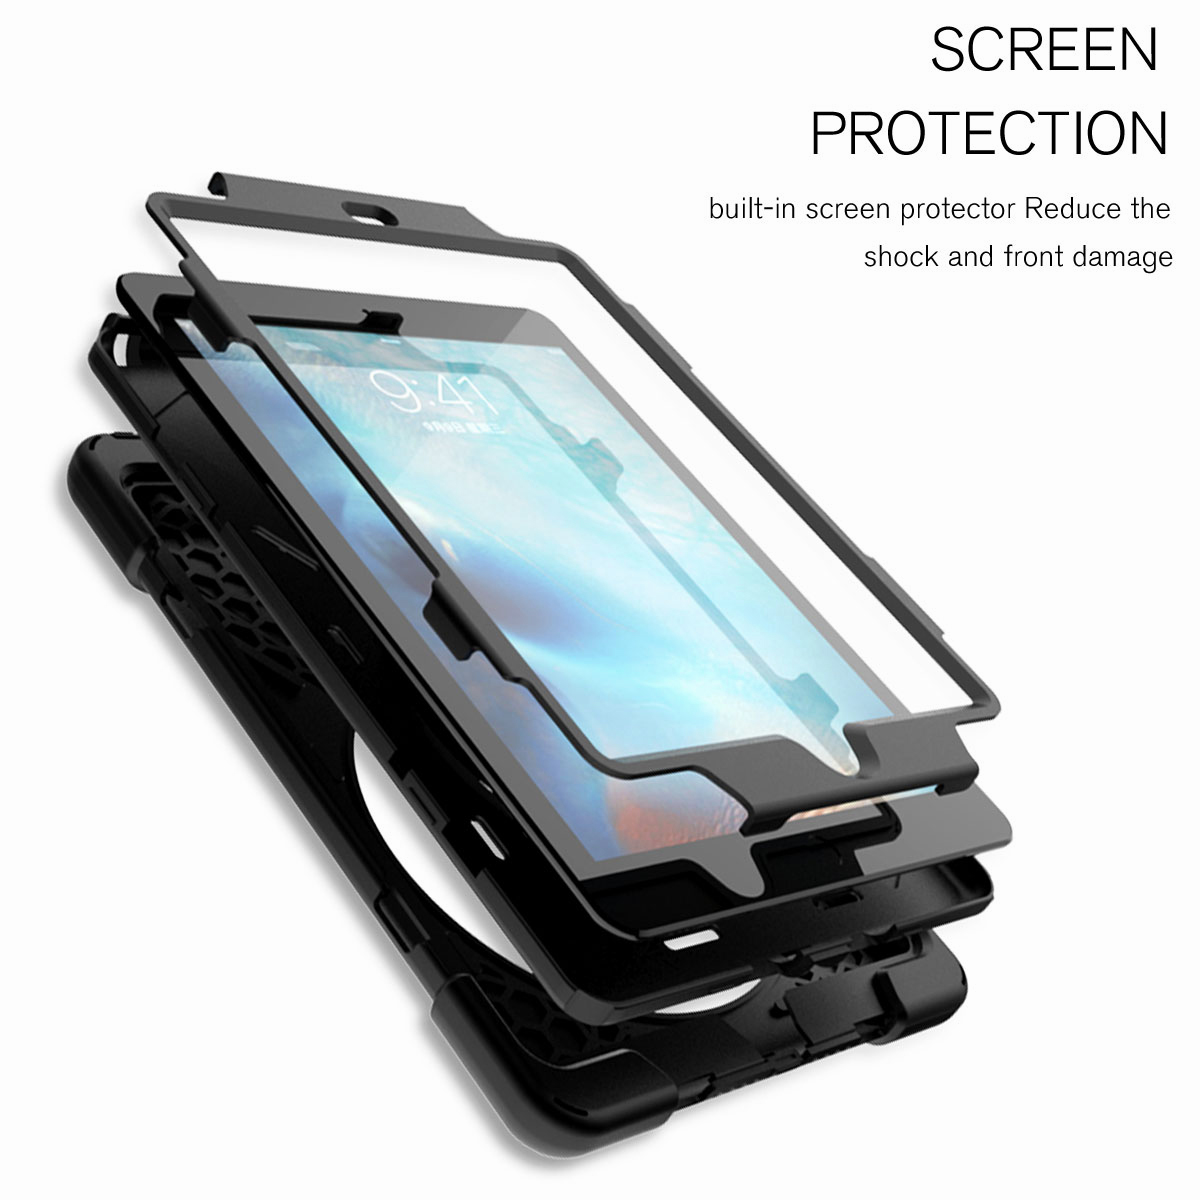 Hybrid-Rugged-Protective-Screen-Protector-Case-For-iPad-2-3-4-with-Stand-Cover